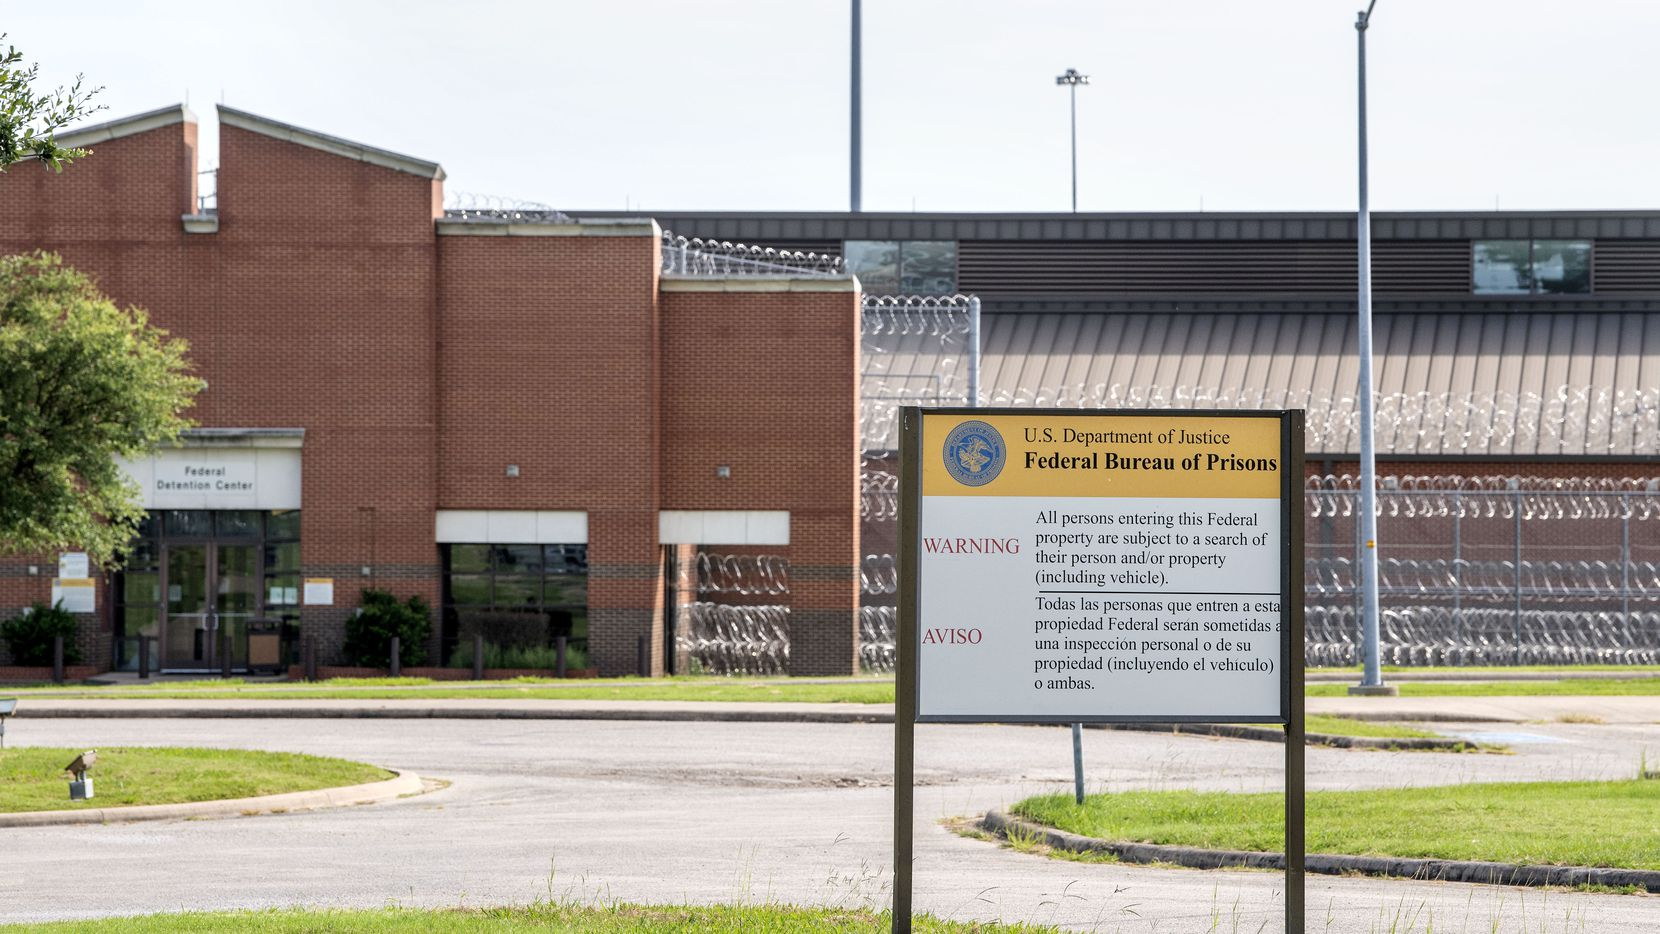 The Federal Correctional Institution, where there has been an outbreak of COVID-19, is shown from Highway 175 on Monday, July 13, 2020 in Seagoville, Texas. (Jeffrey McWhorter/Special Contributor)